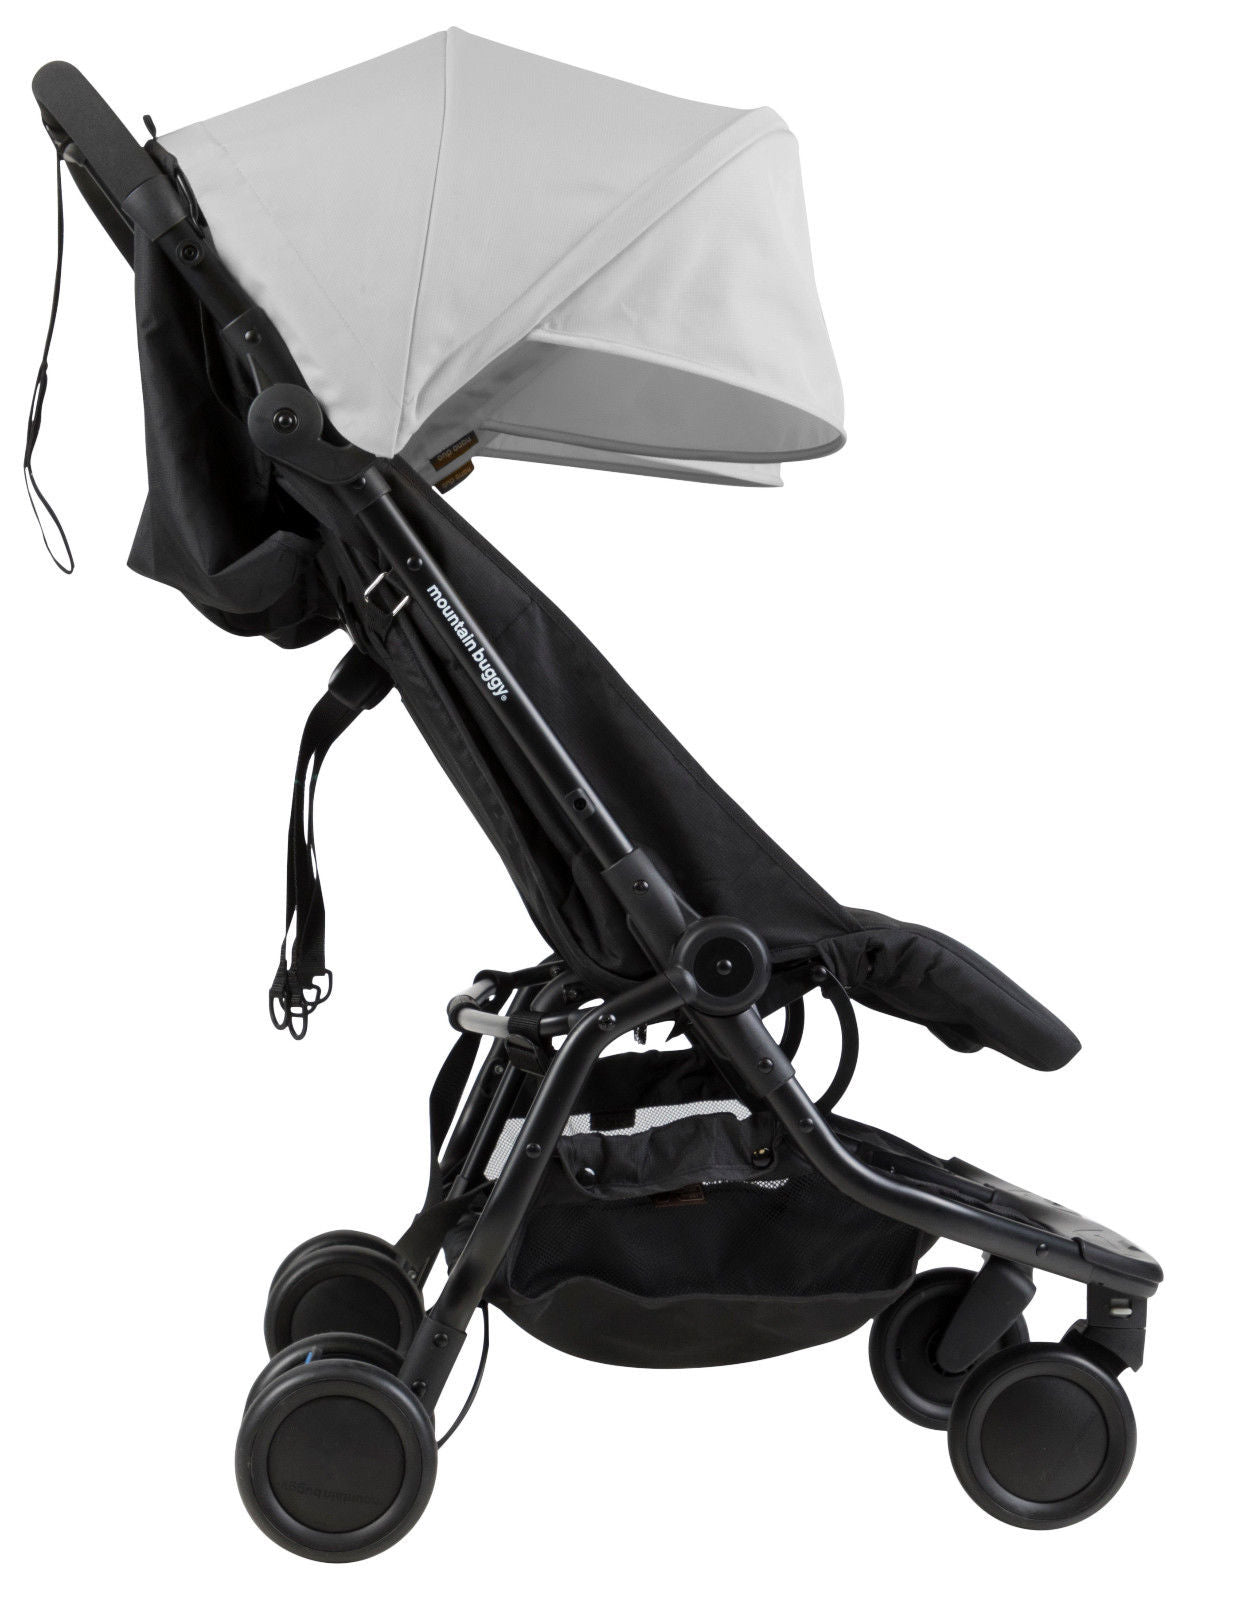 Mountain Buggy Nano DUO Double Stroller, Silver